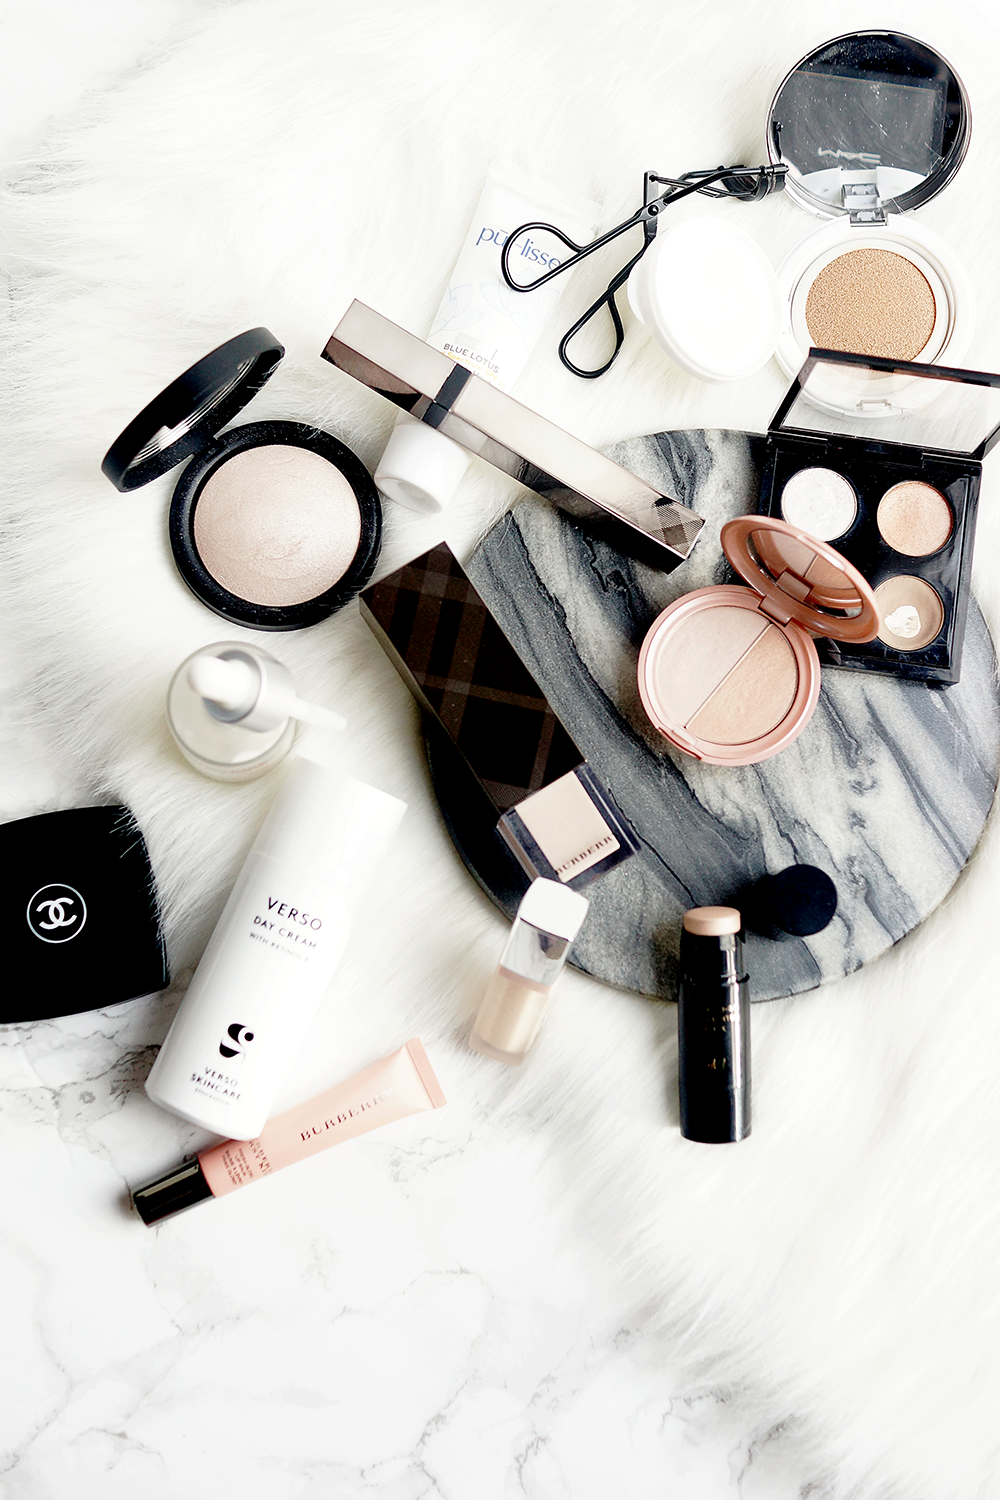 beauty-style-lifestyle-flatlay-5-minute-makeup-routine